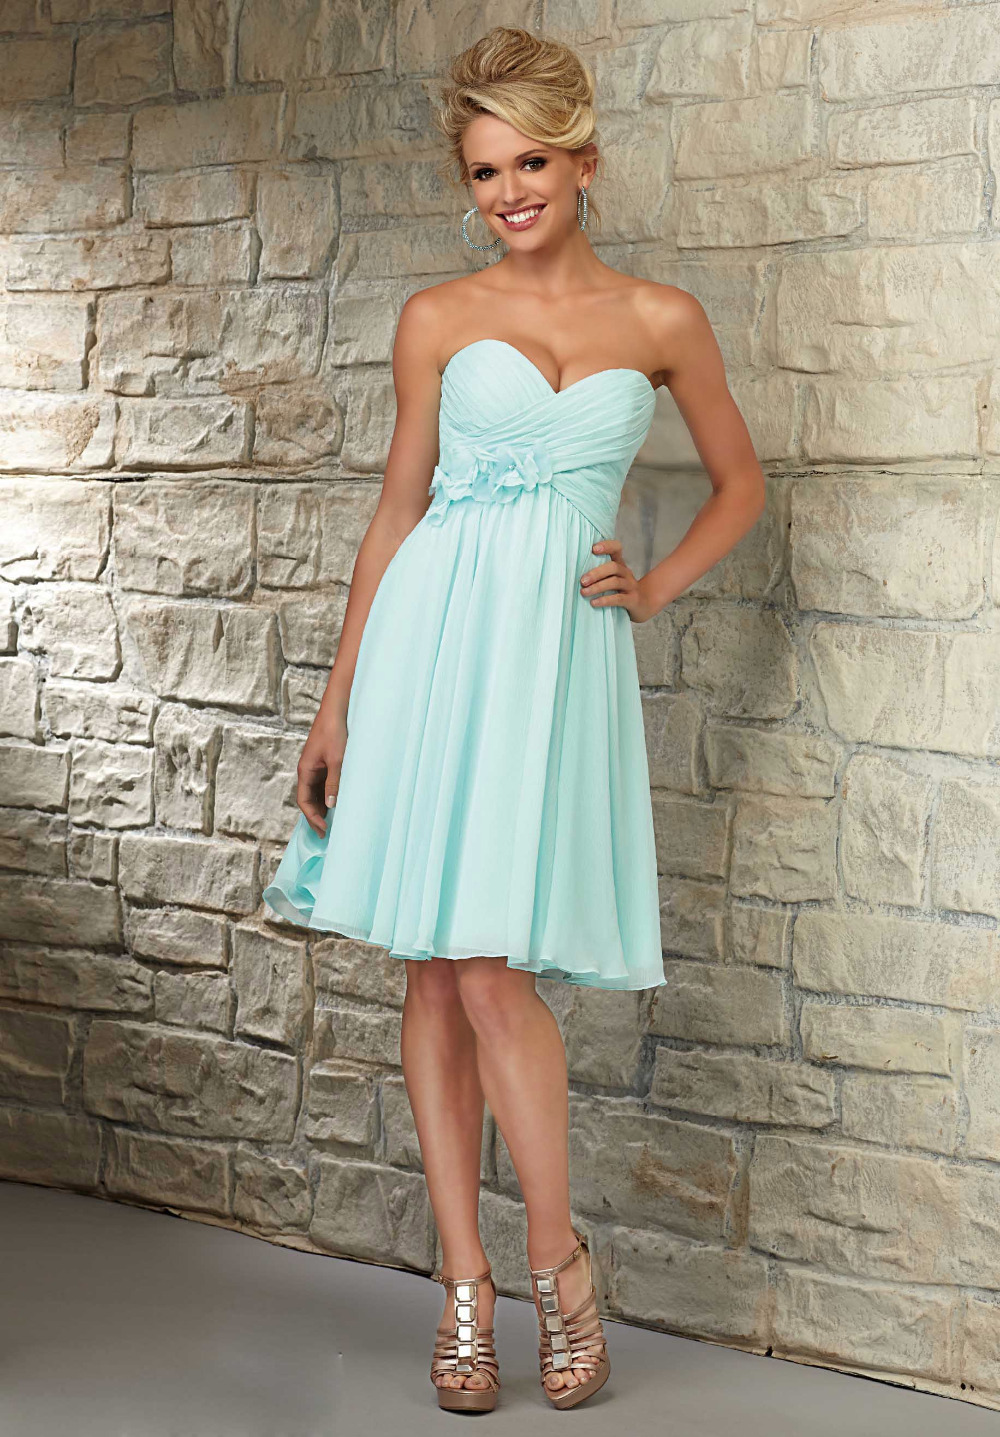 Mint Green Turquoise Short Chiffon Bridesmaid Dresses 2016 Beach